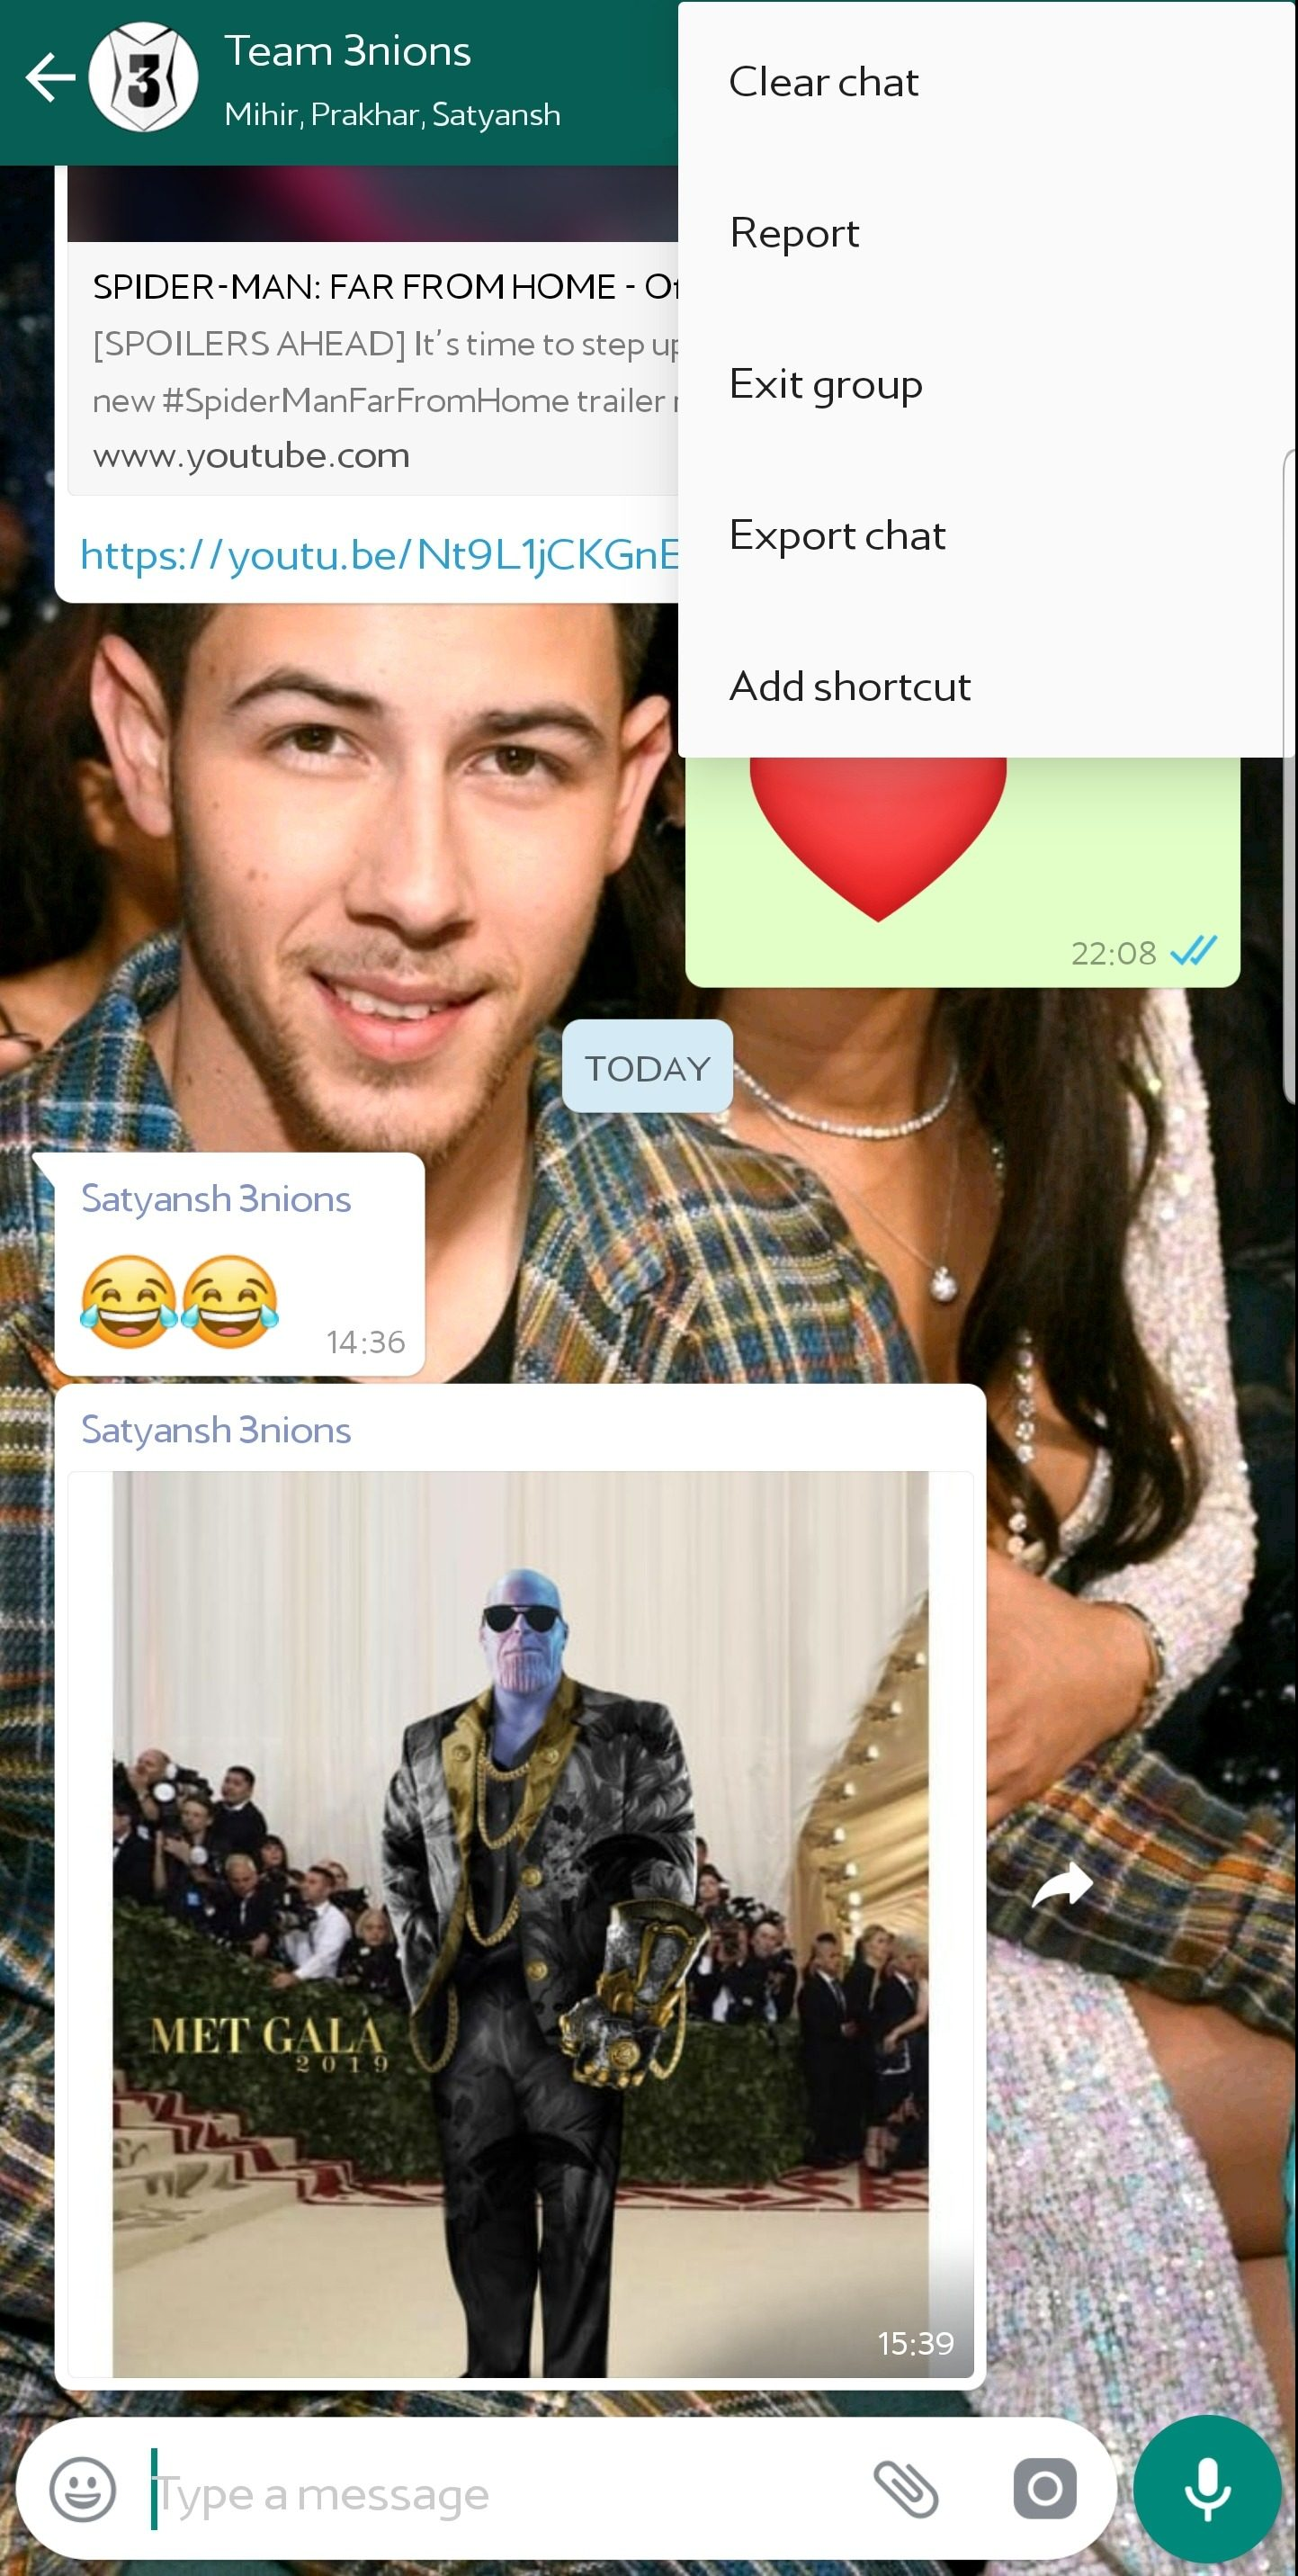 How To Create WhatsApp Group Shortcut on Android Home Screen